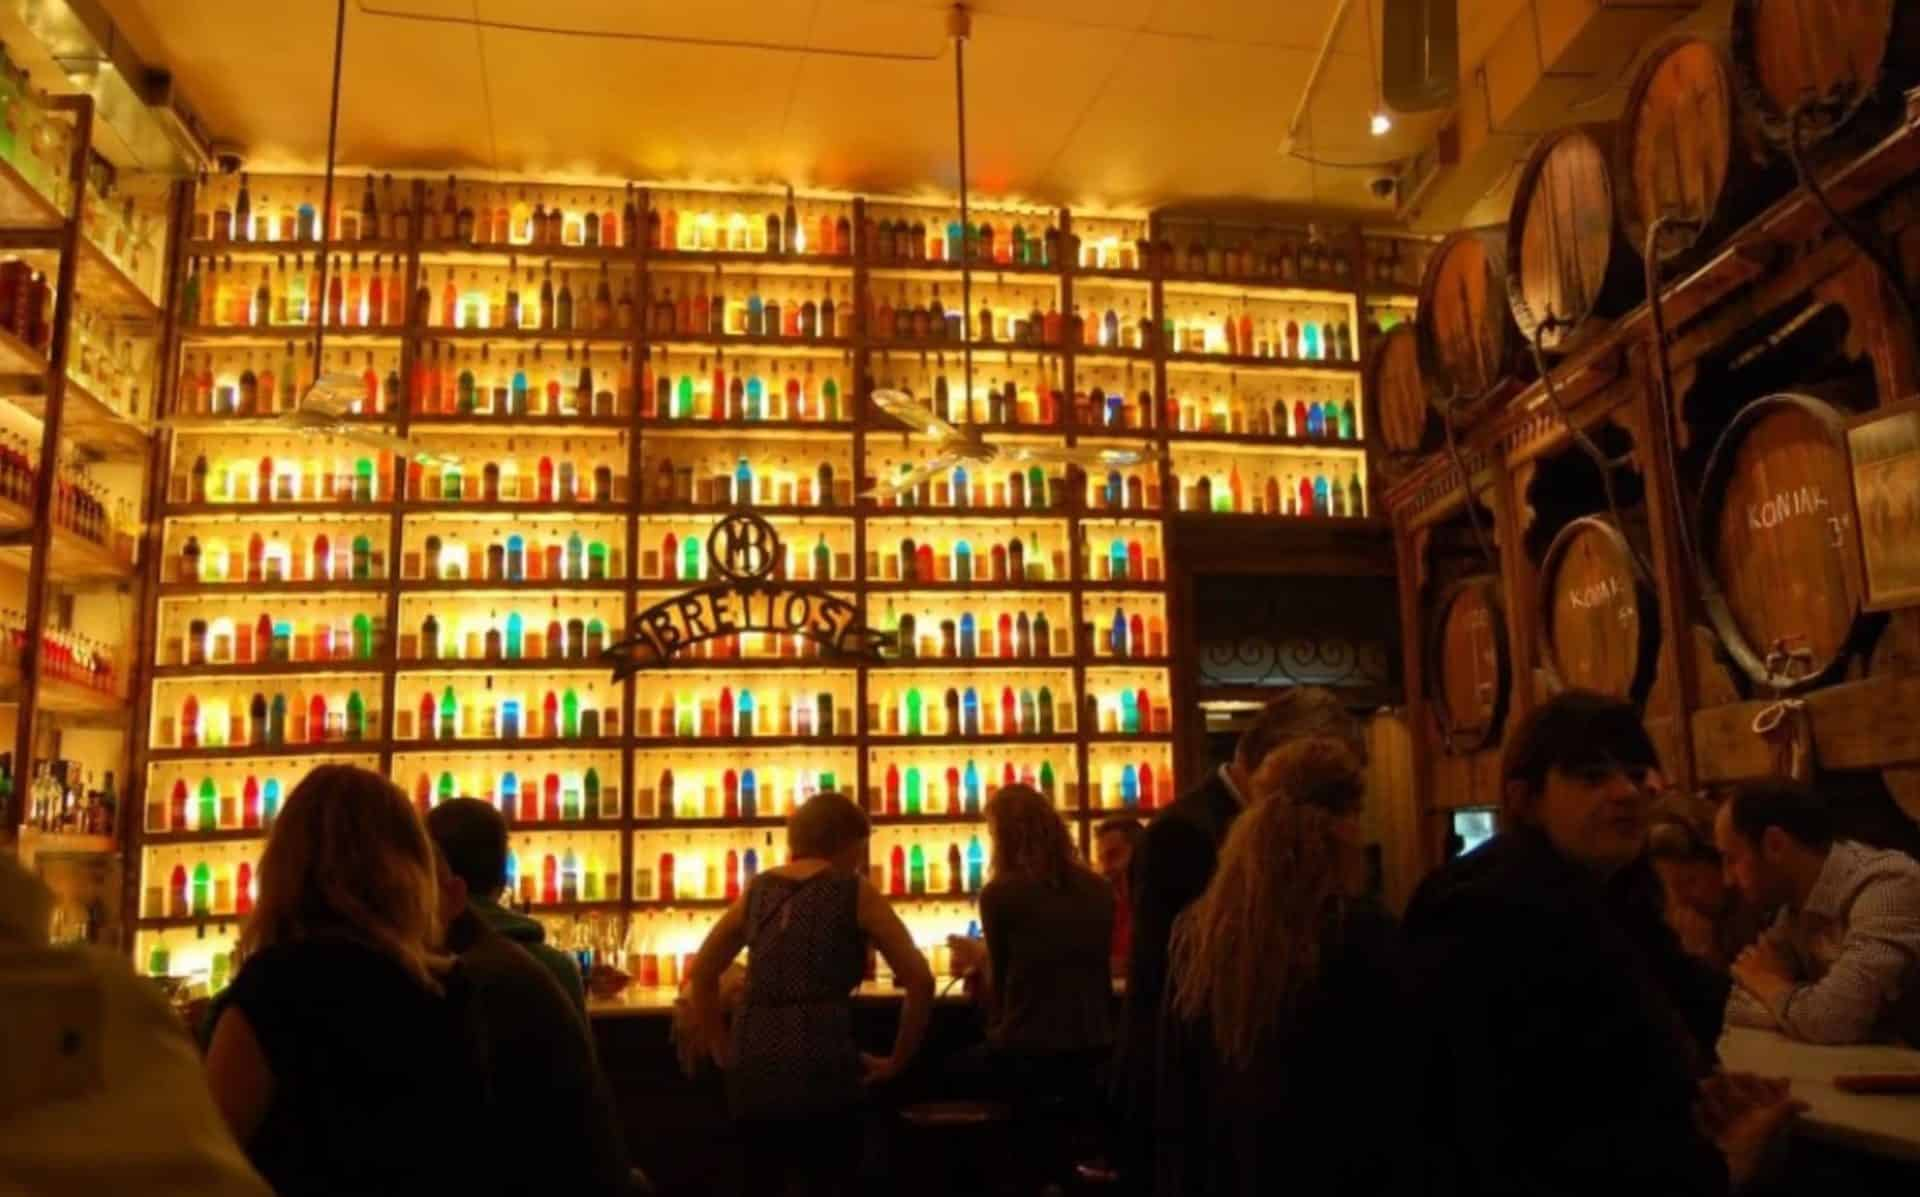 7 Of The Best Bars In Athens